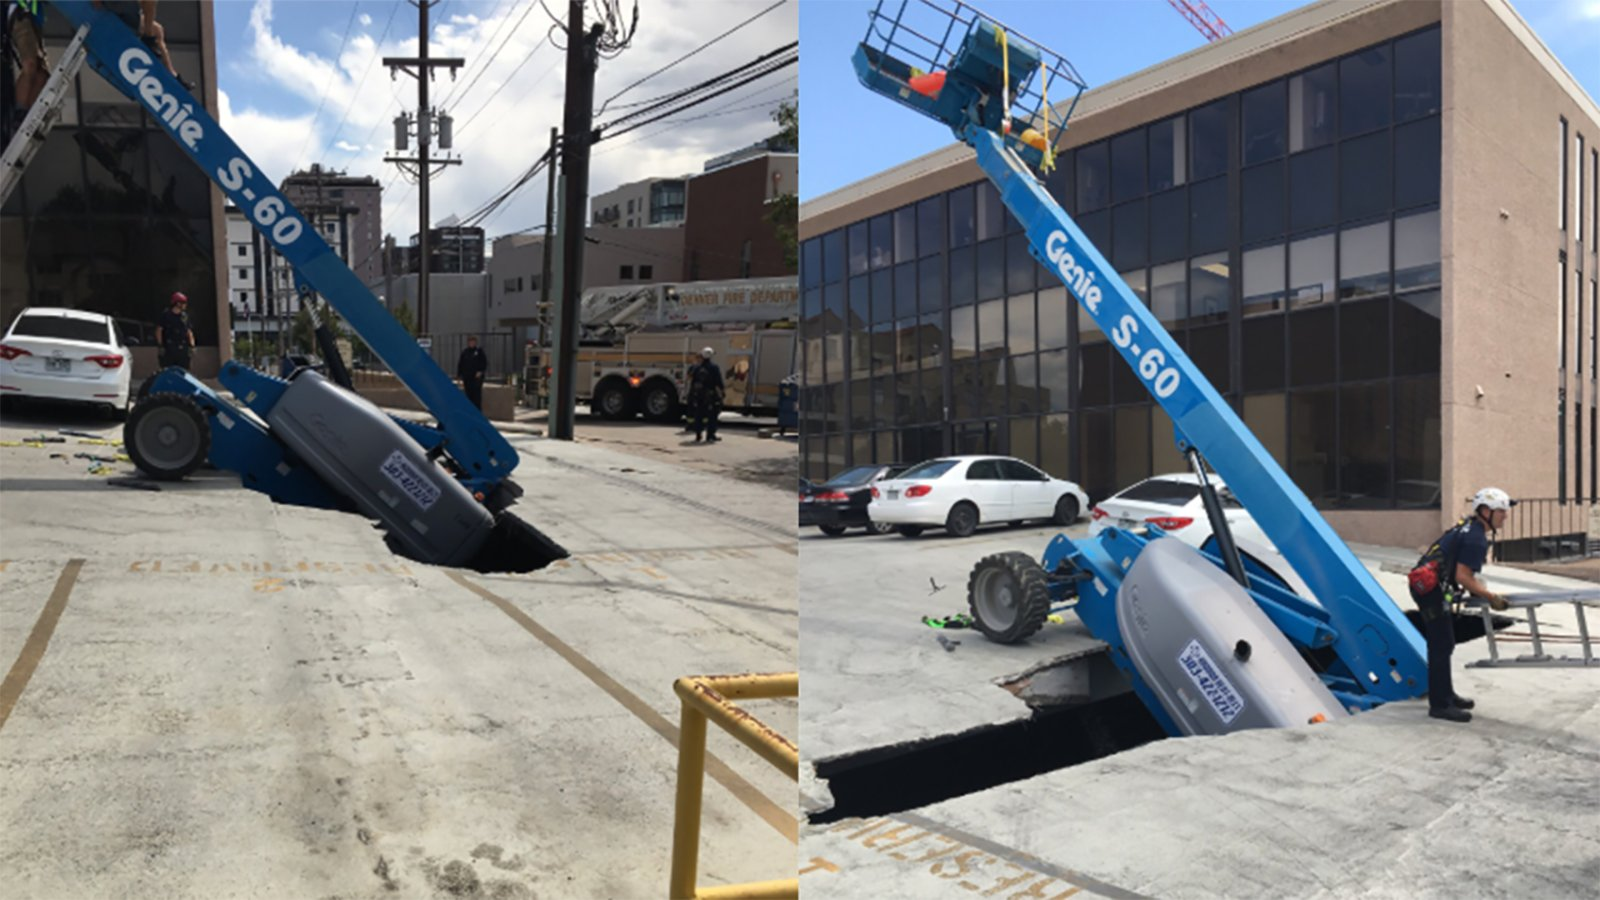 Picture of lift sticking out of the street